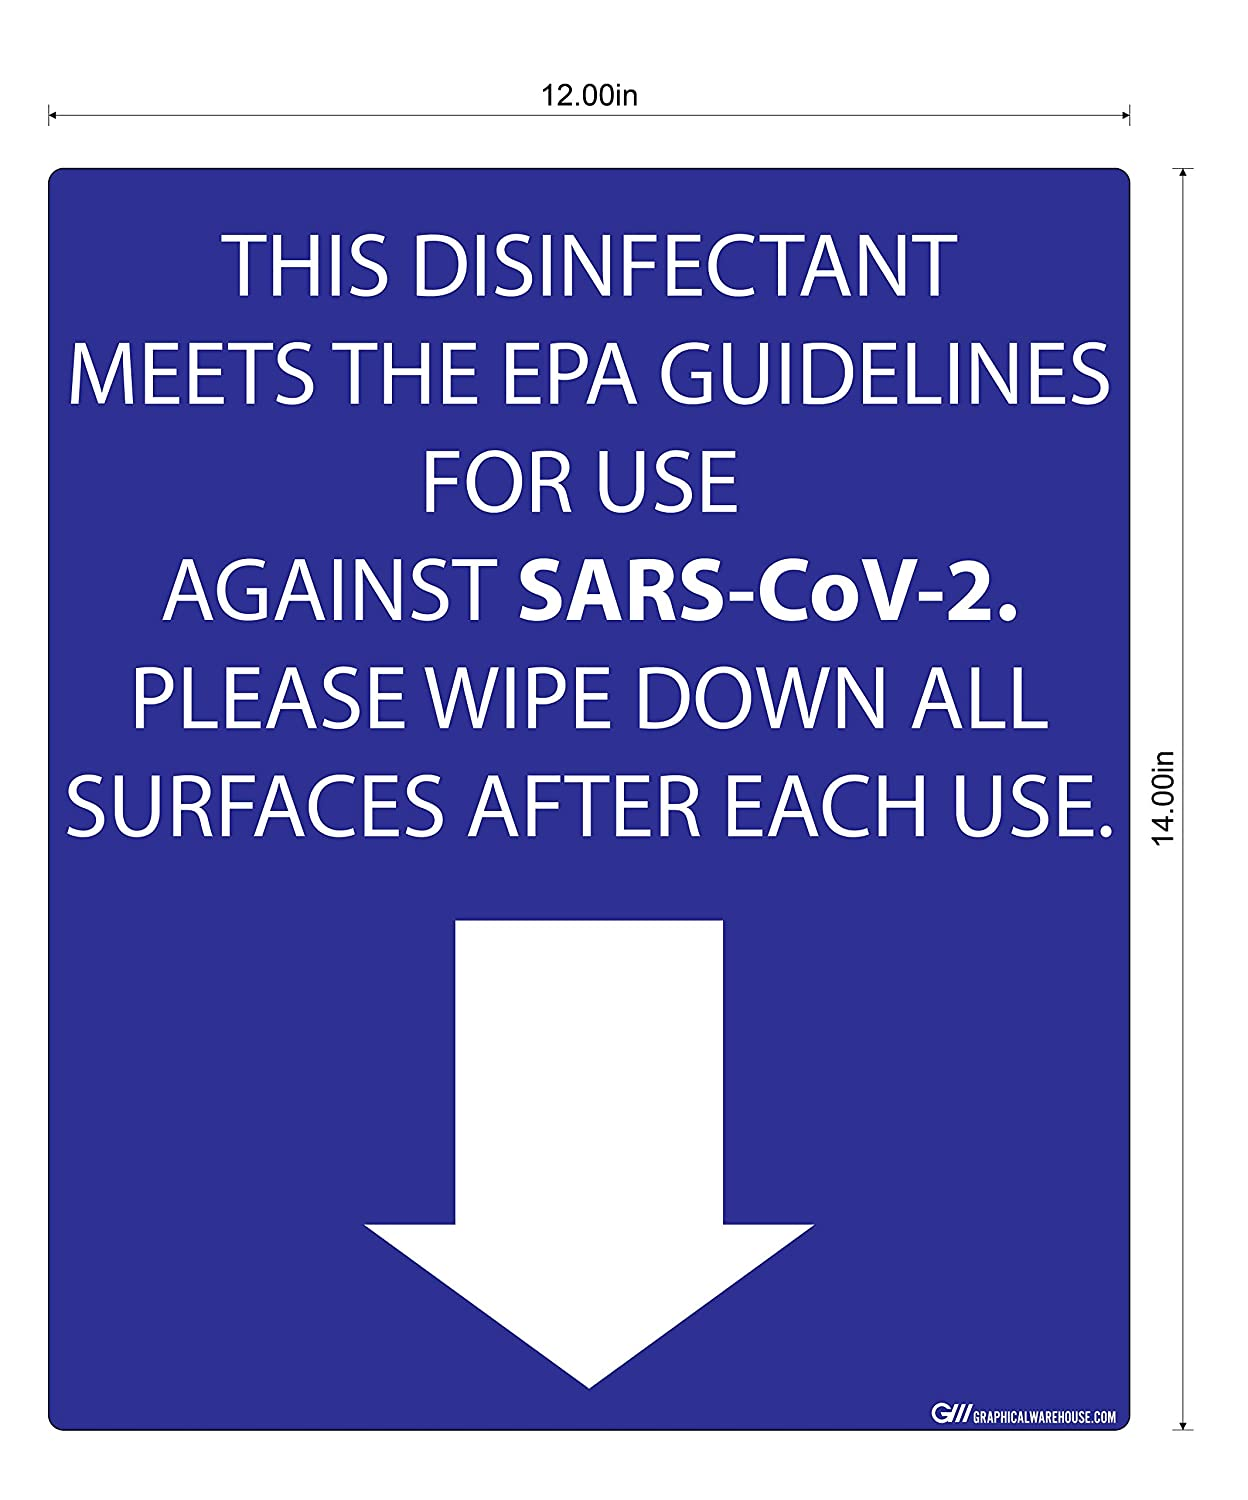 """Disinfectant Against SARS-CoV-2, Please Wipe Surfaces"" Adhesive Durable Vinyl Decal- 14x12"""